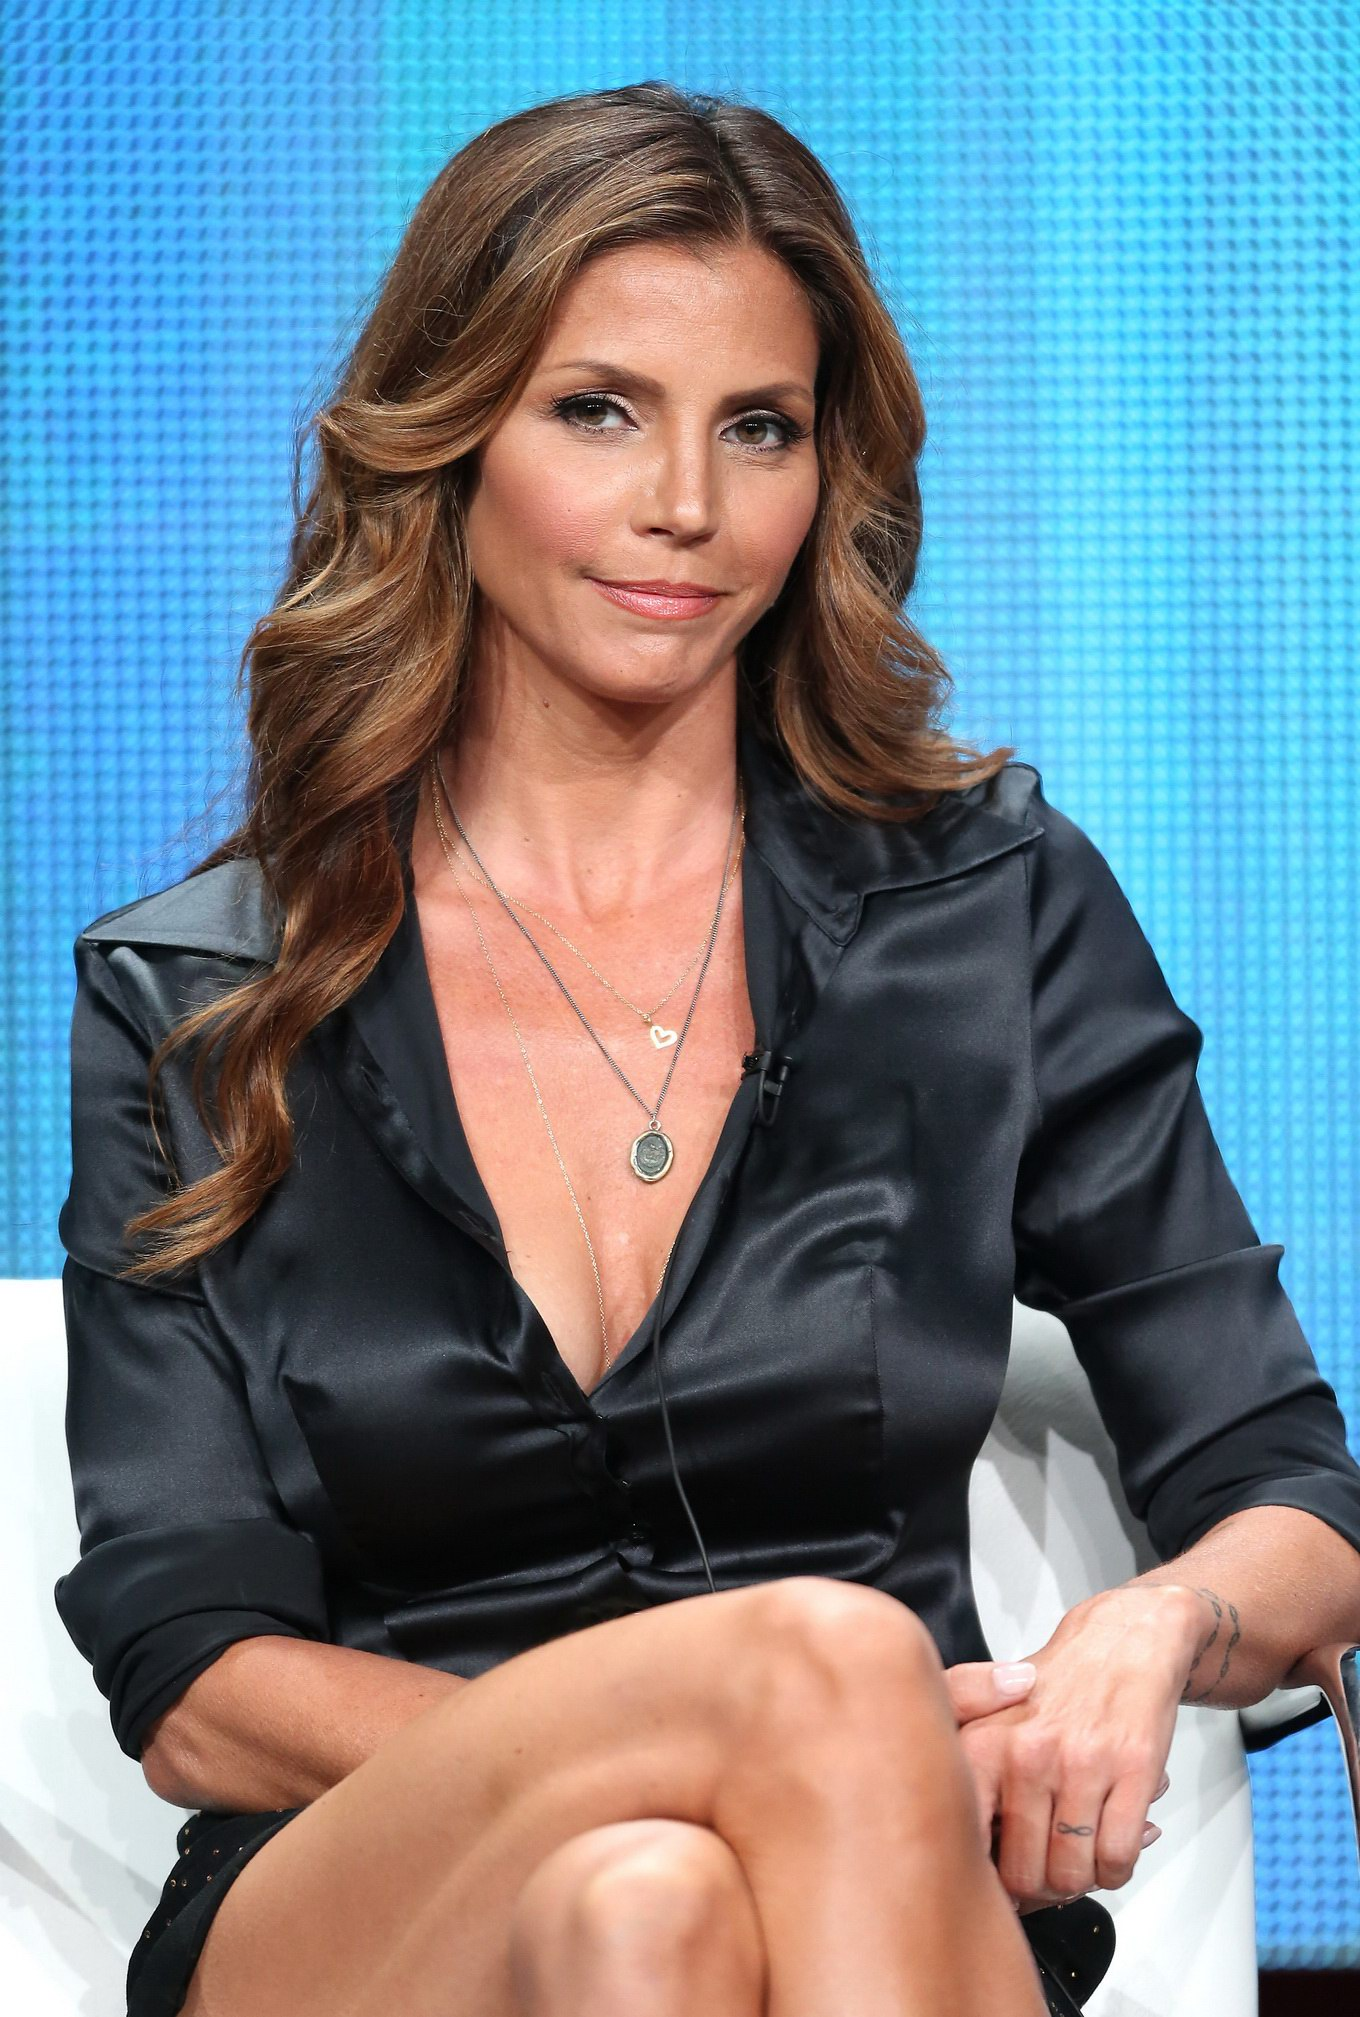 Error. Charisma carpenter cleavage share your